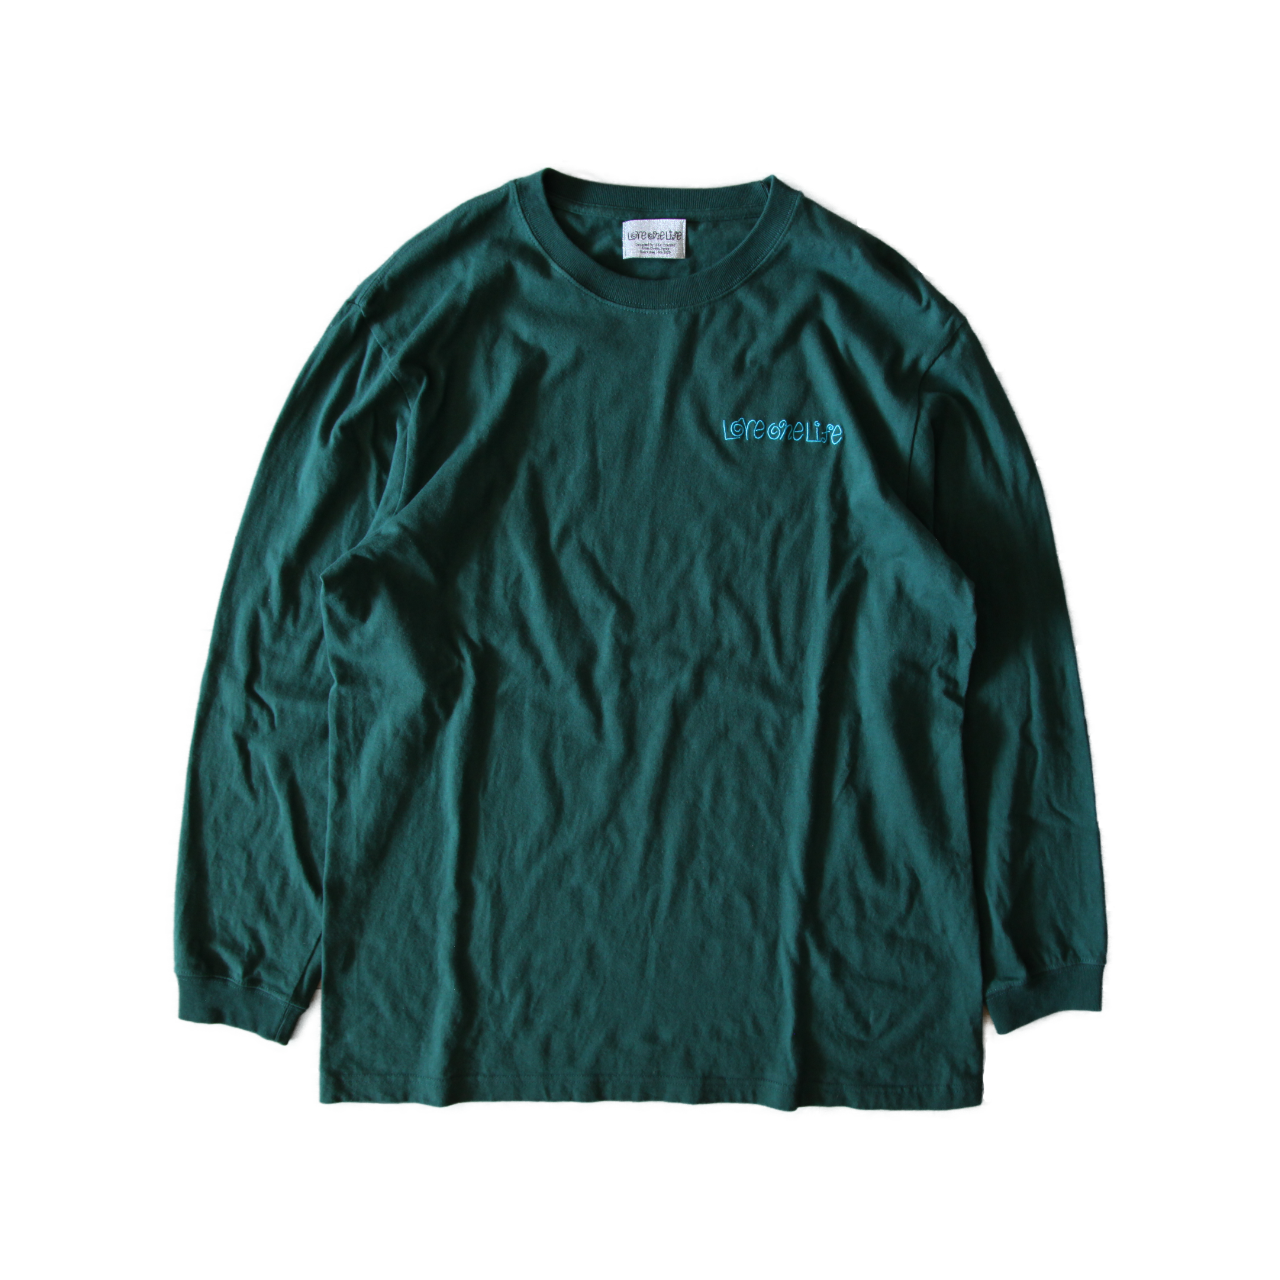 signature love one life LS tee in ivy green